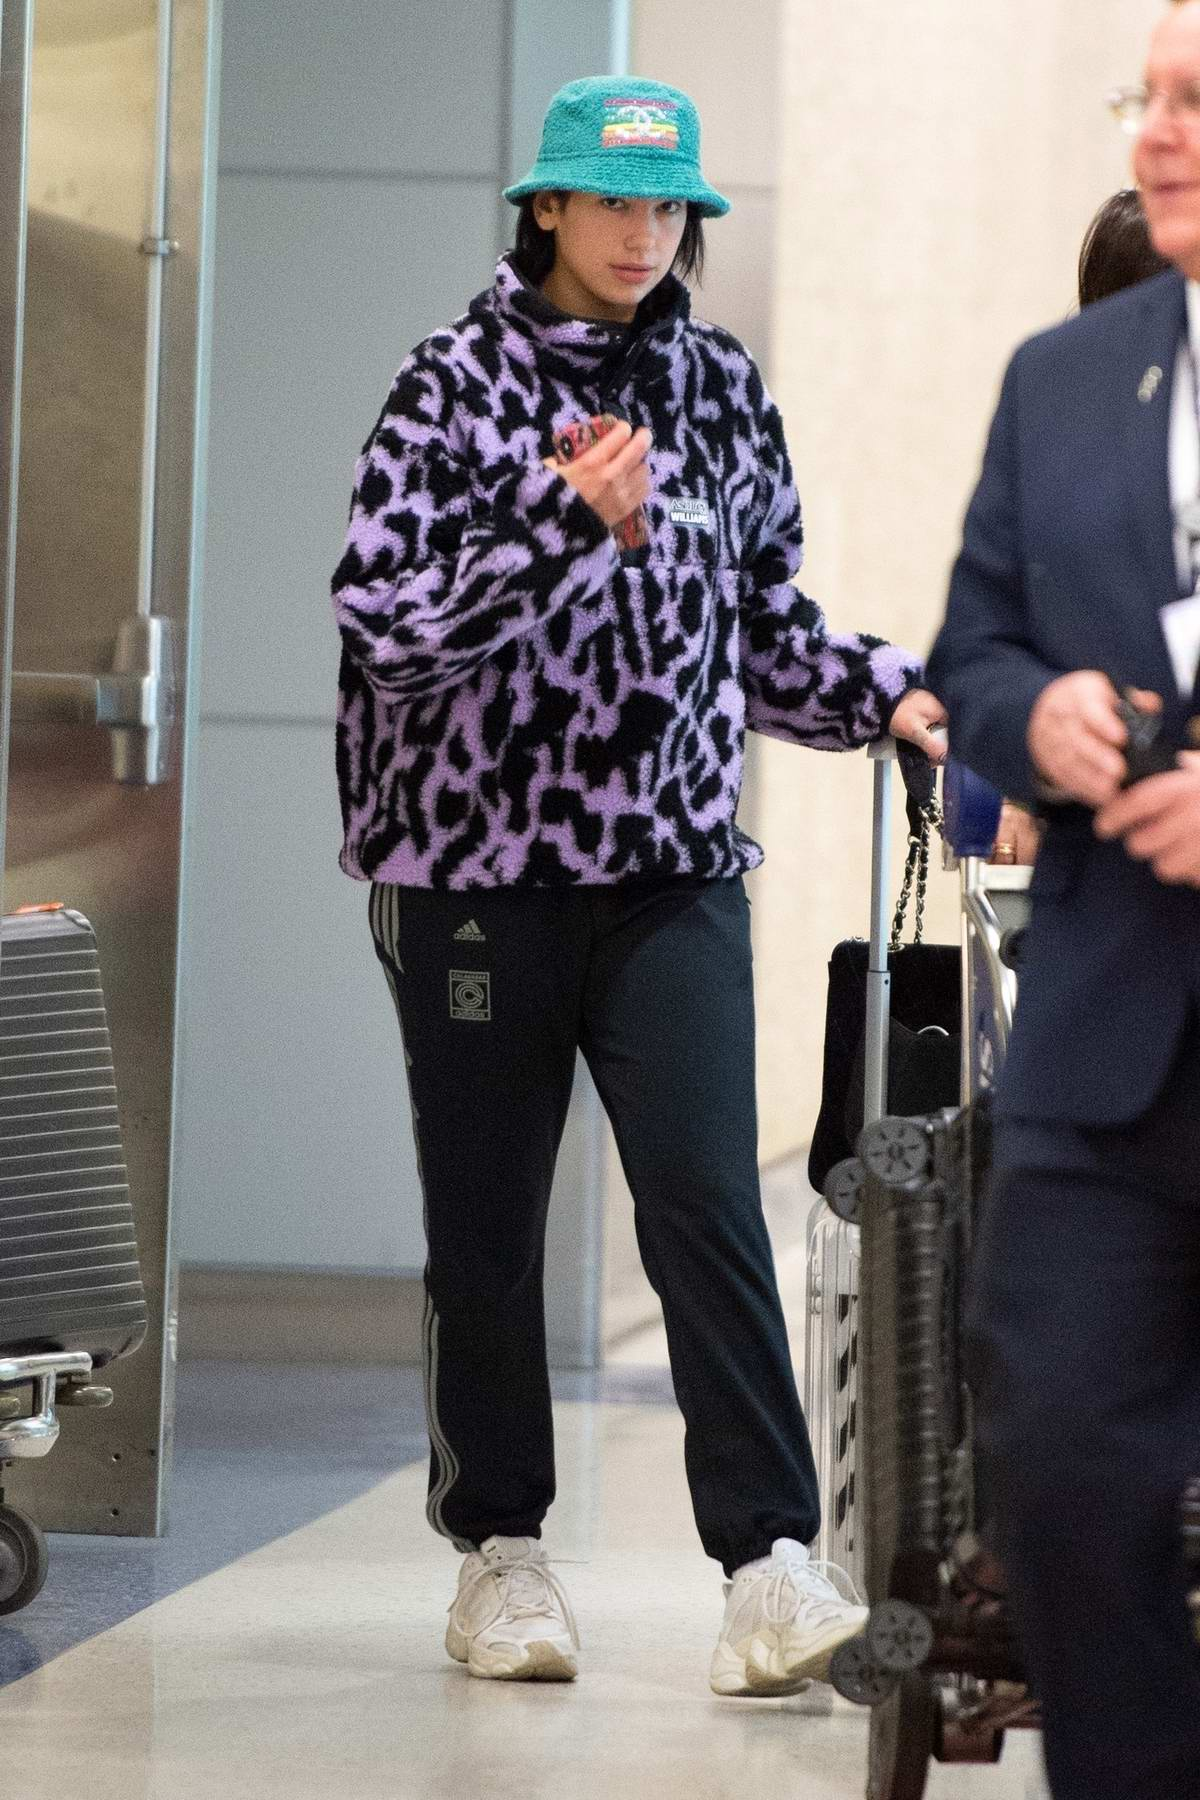 Dua Lipa wears an animal print purple fleece with Chanel hat as she touches down at JFK Airport in New York City